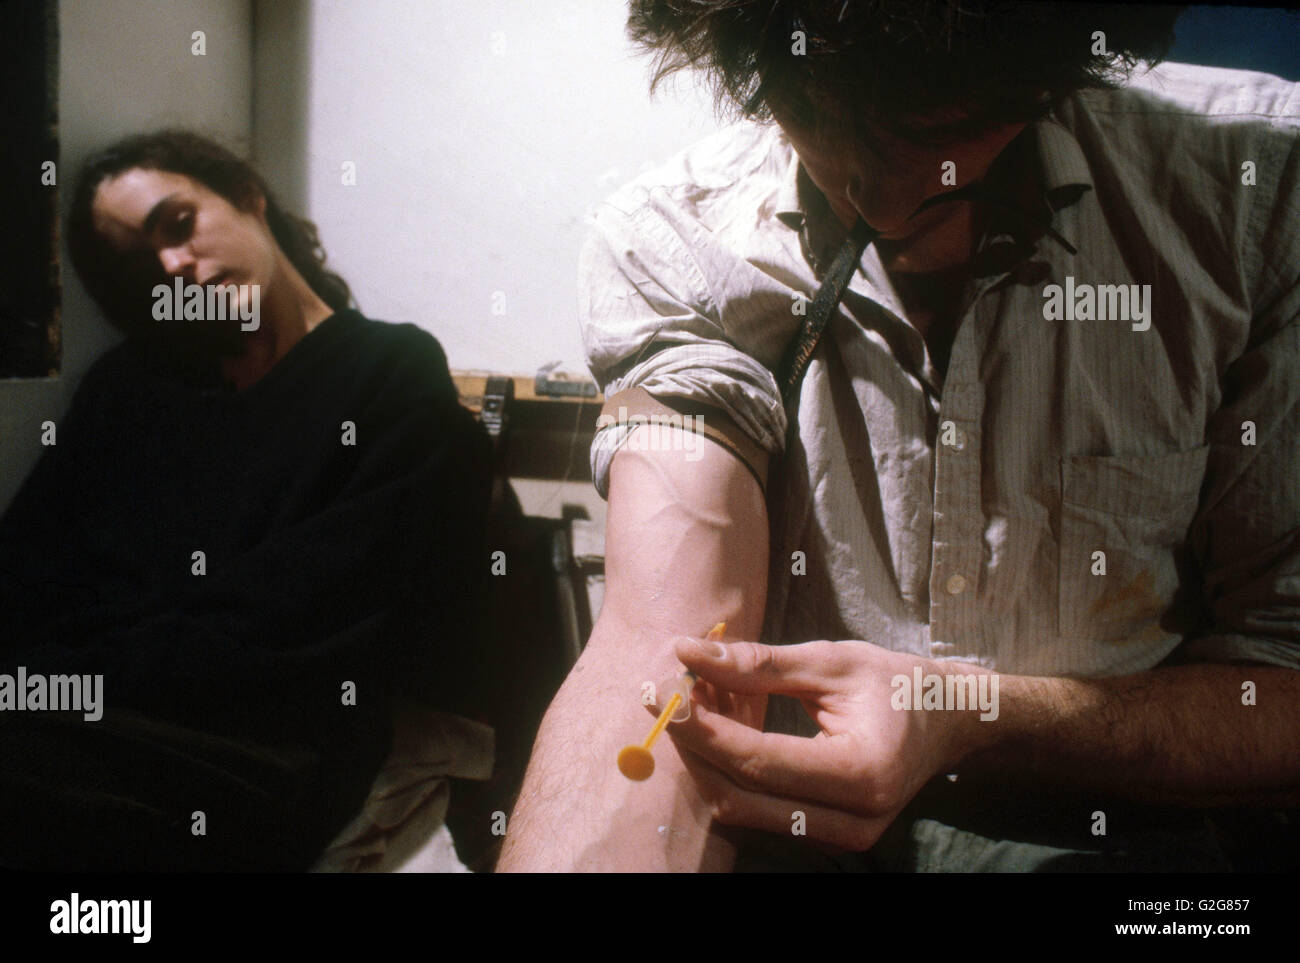 A heroin addict shooting up while his girliend is already high. - Stock Image